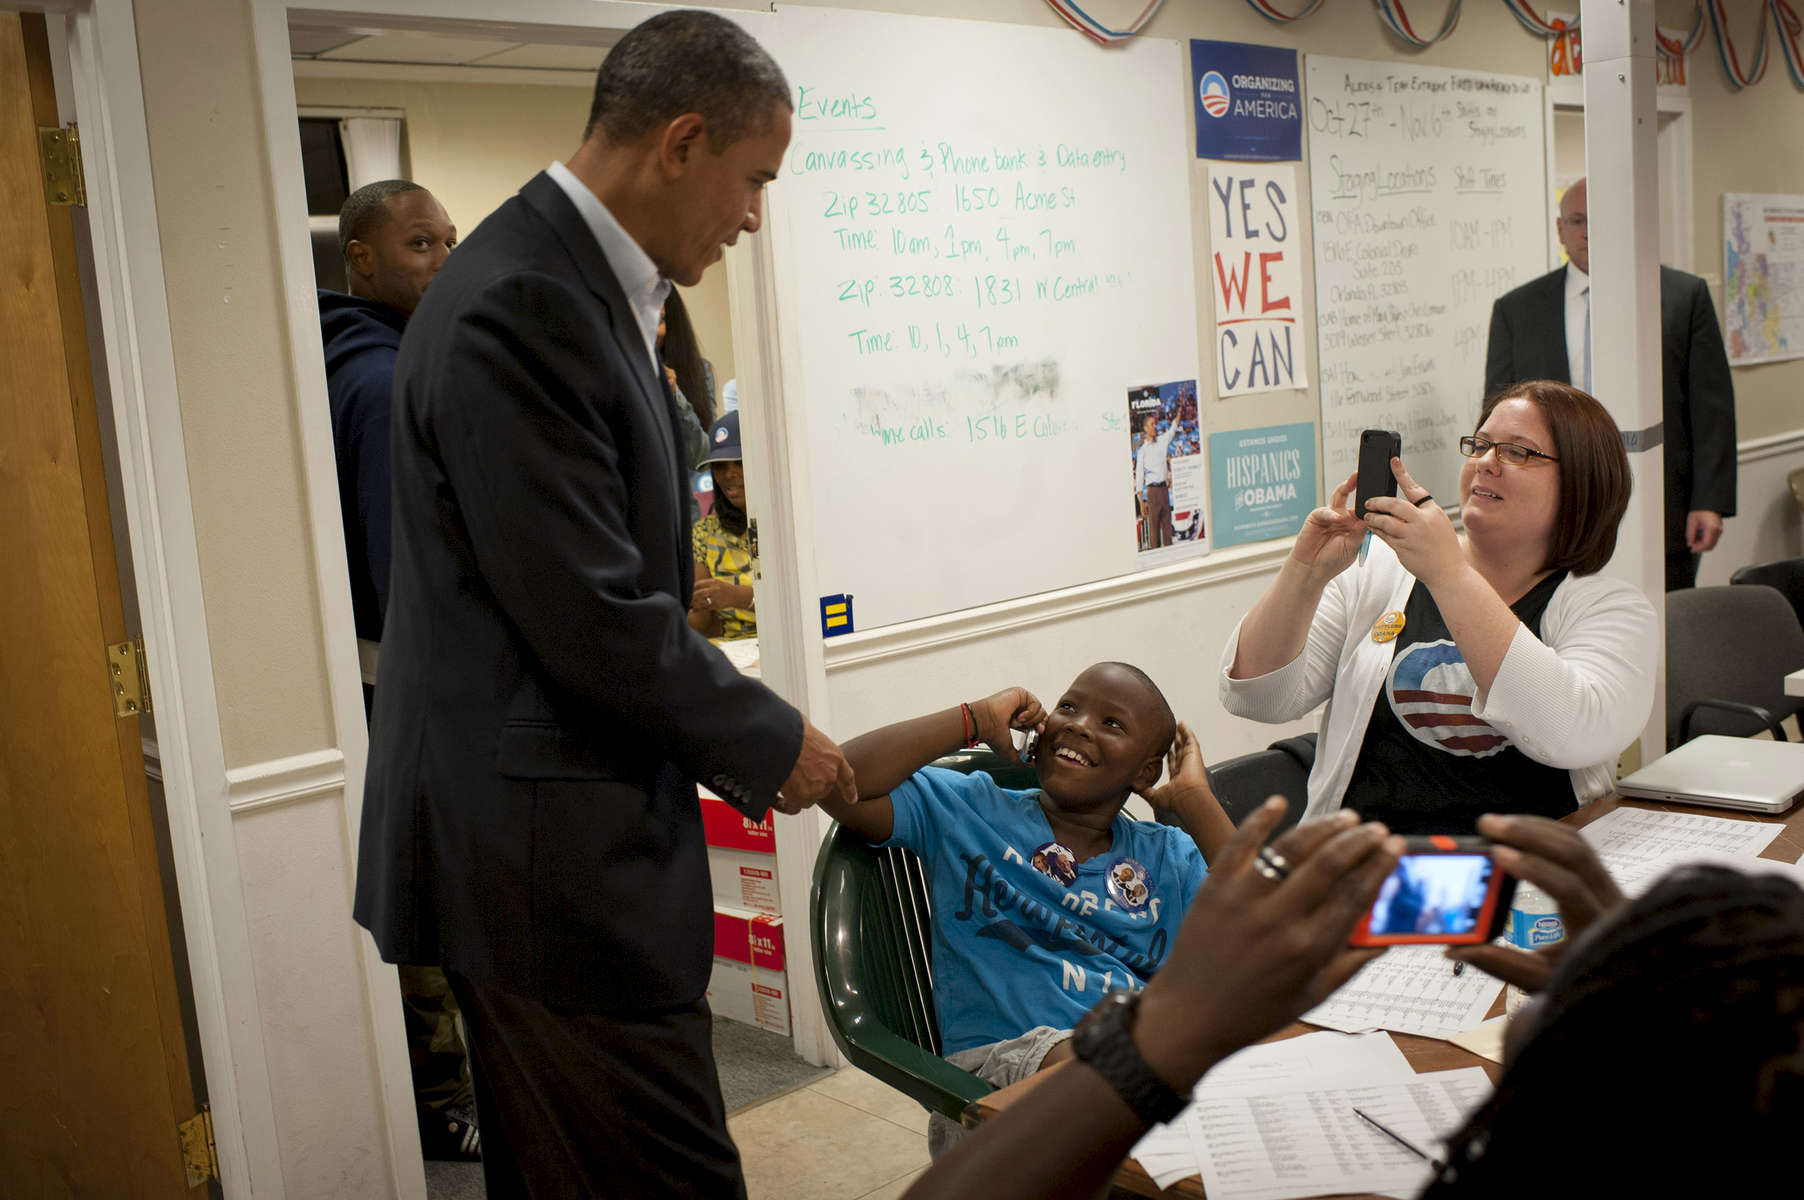 October 28, 2012 - Orlando, FL:  President Barack Obama surprises a young boy who is making phone calls to voters at a campaign field office in Orlando, FL. (Scout Tufankjian for Obama for America/Polaris)